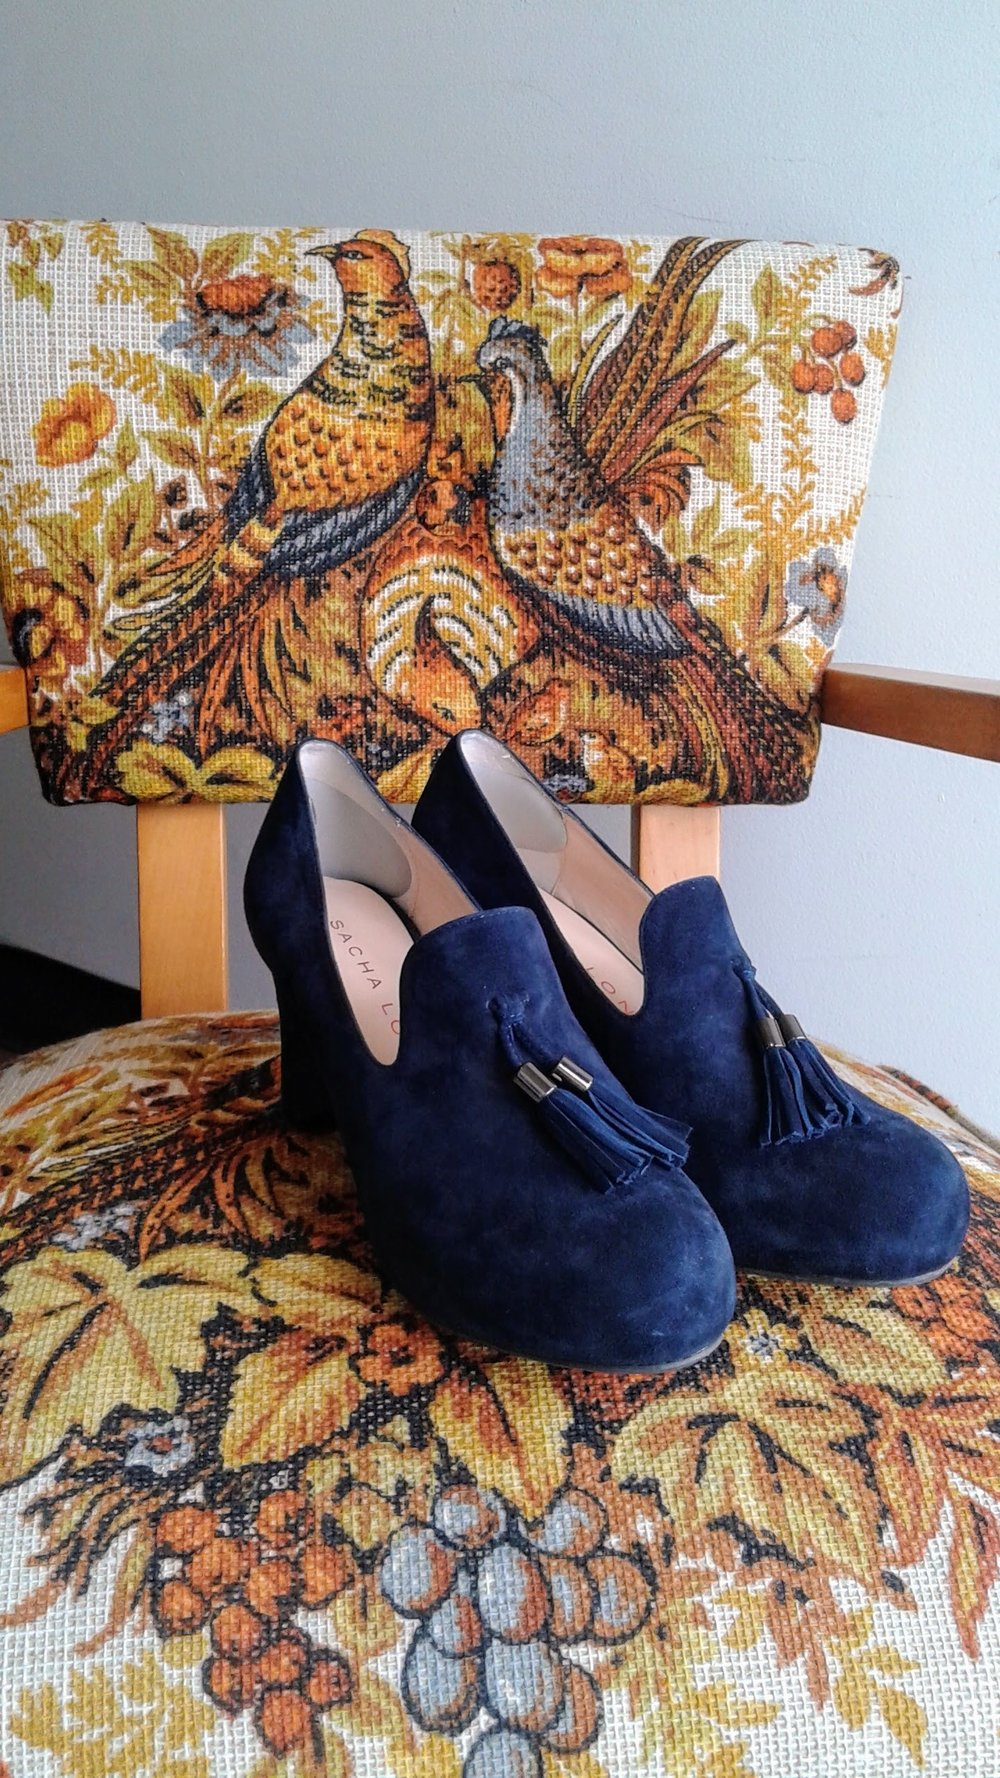 Sacha London shoes; S8.5, $89